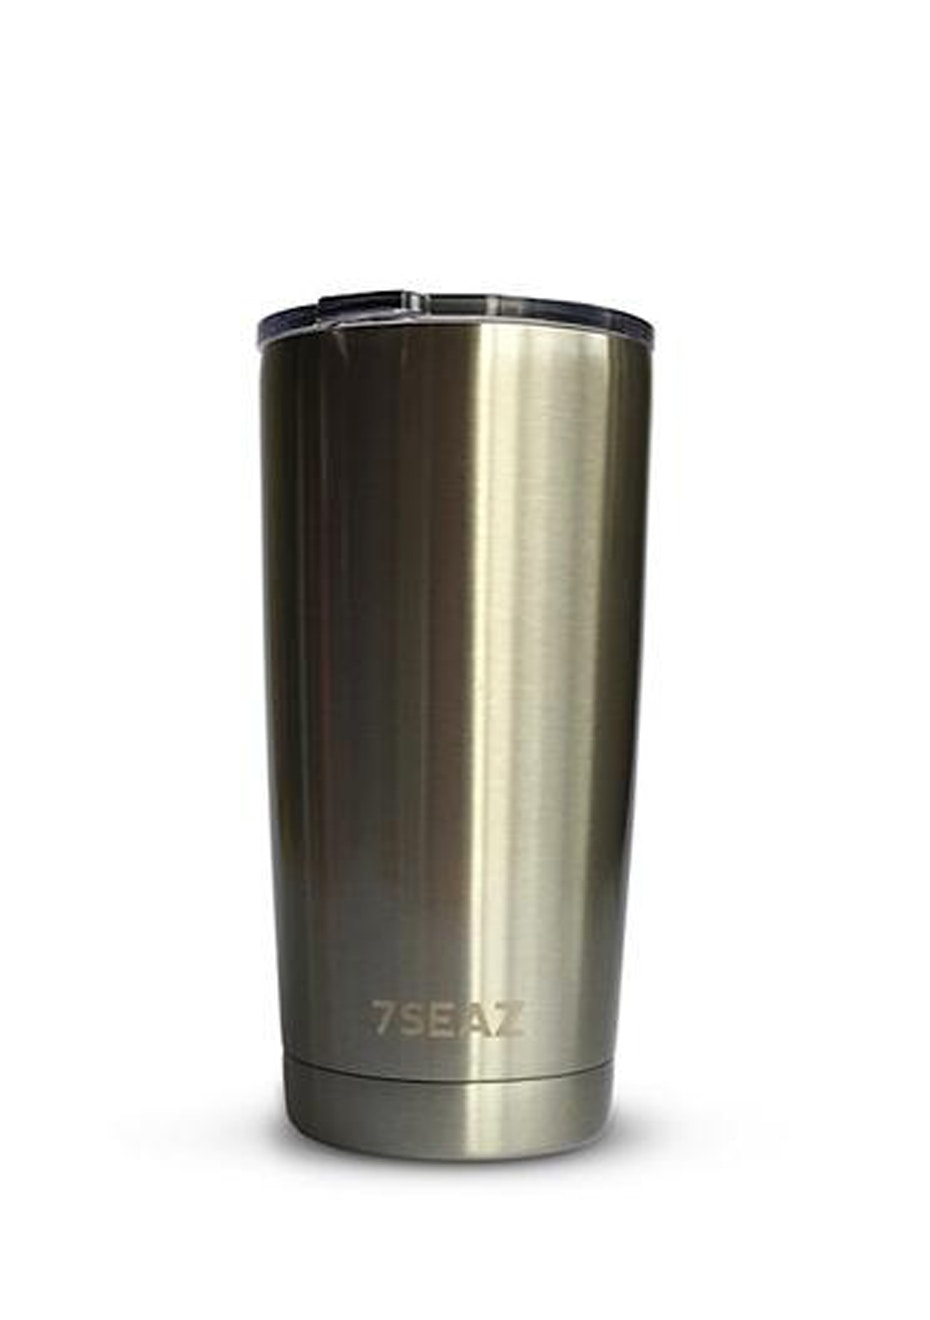 BBBYO - BBBYO coffee fix cup - Silver